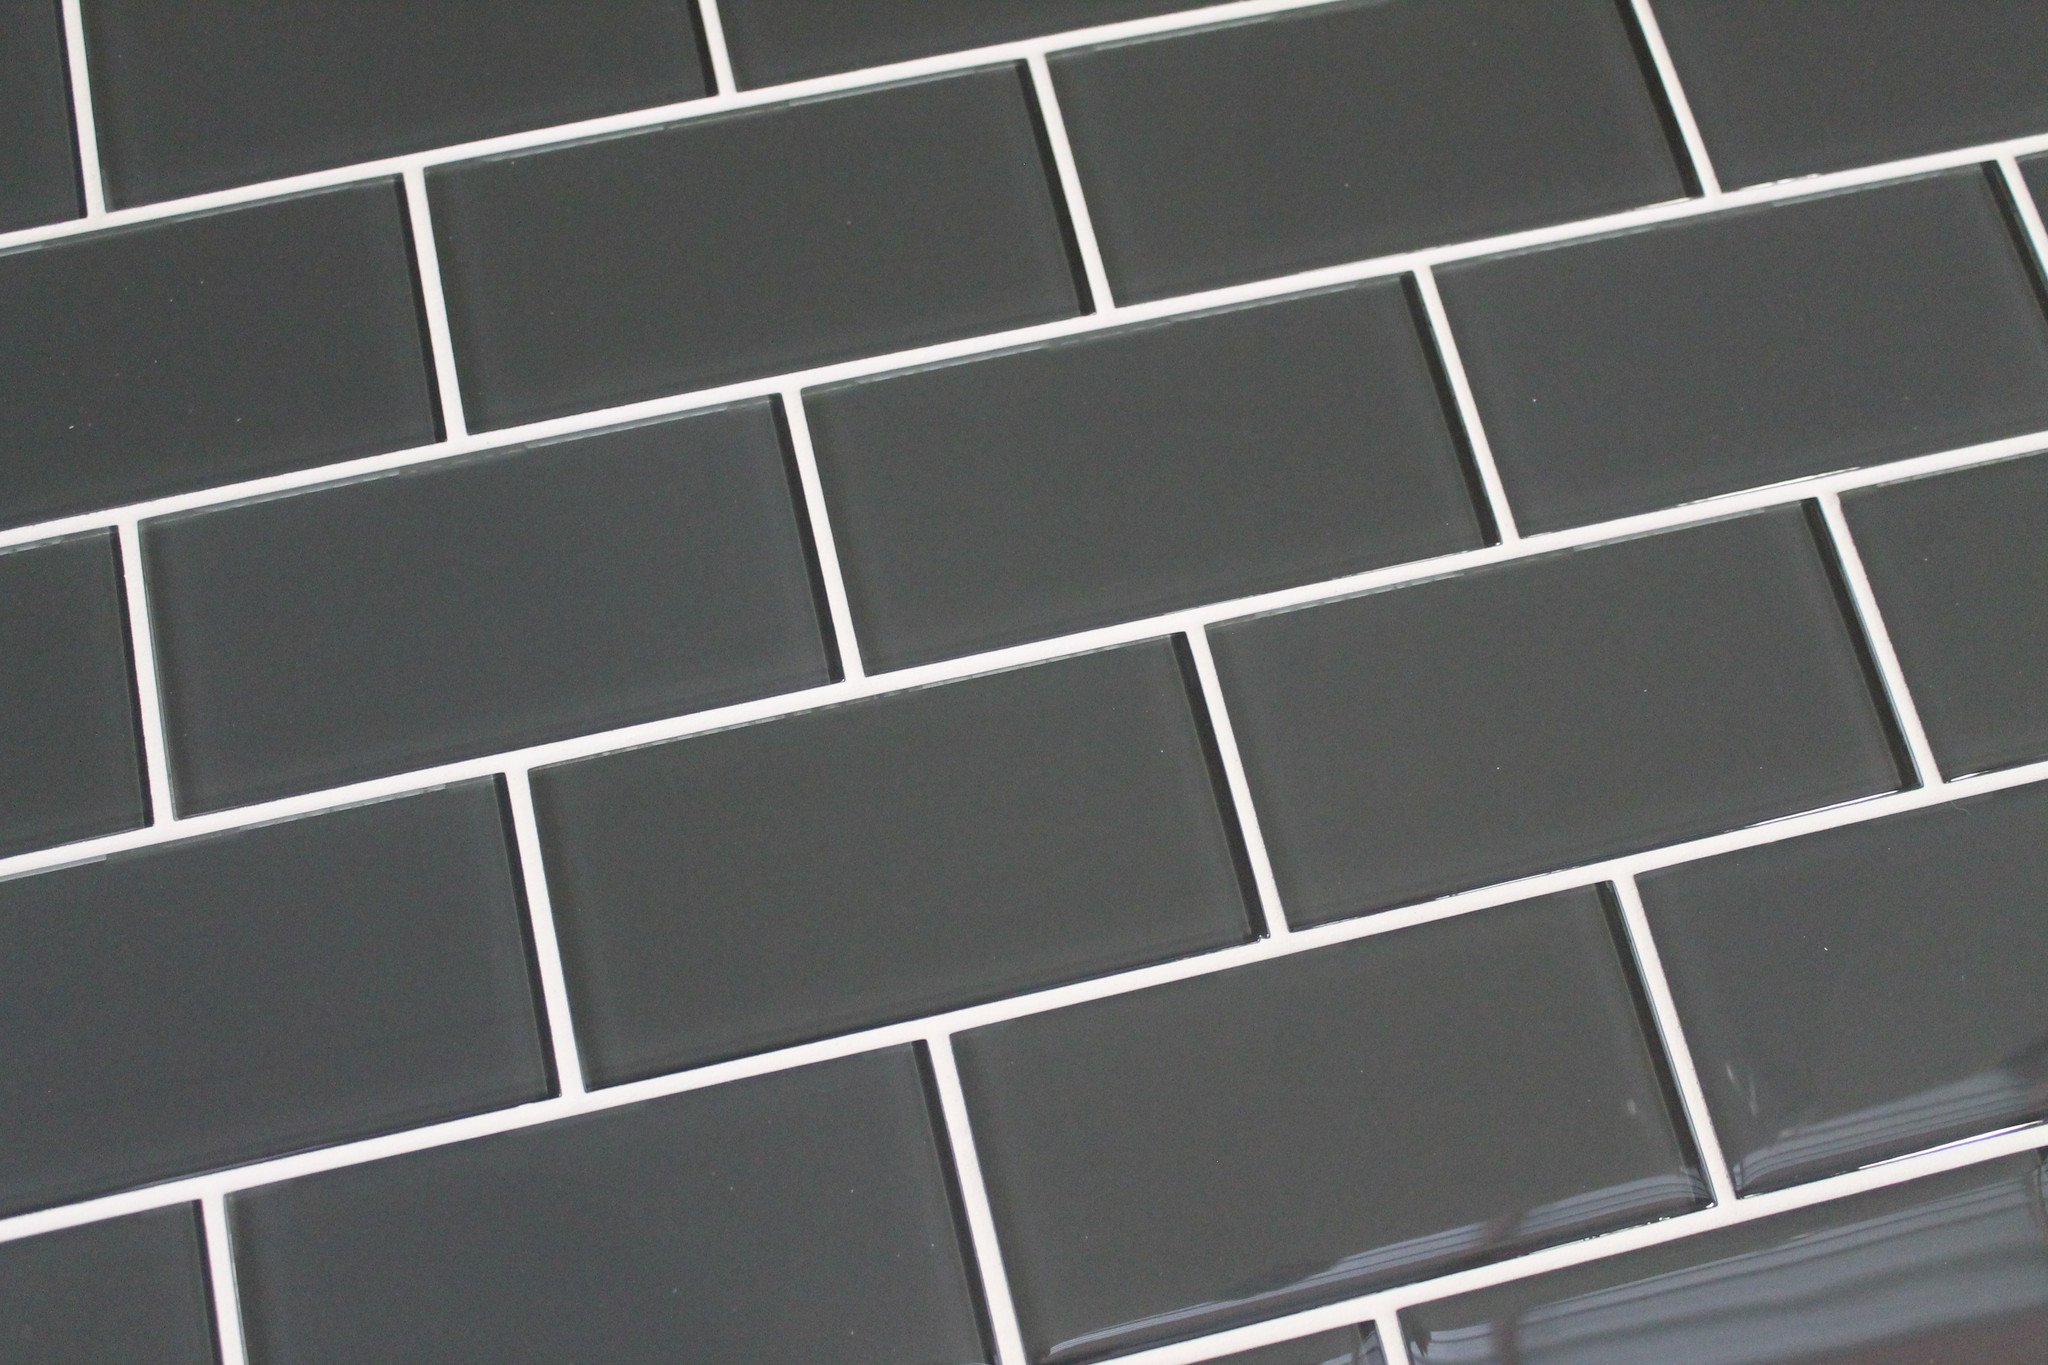 10 Square Feet - Ash Dark Grey 3x6 Glass Subway Tiles